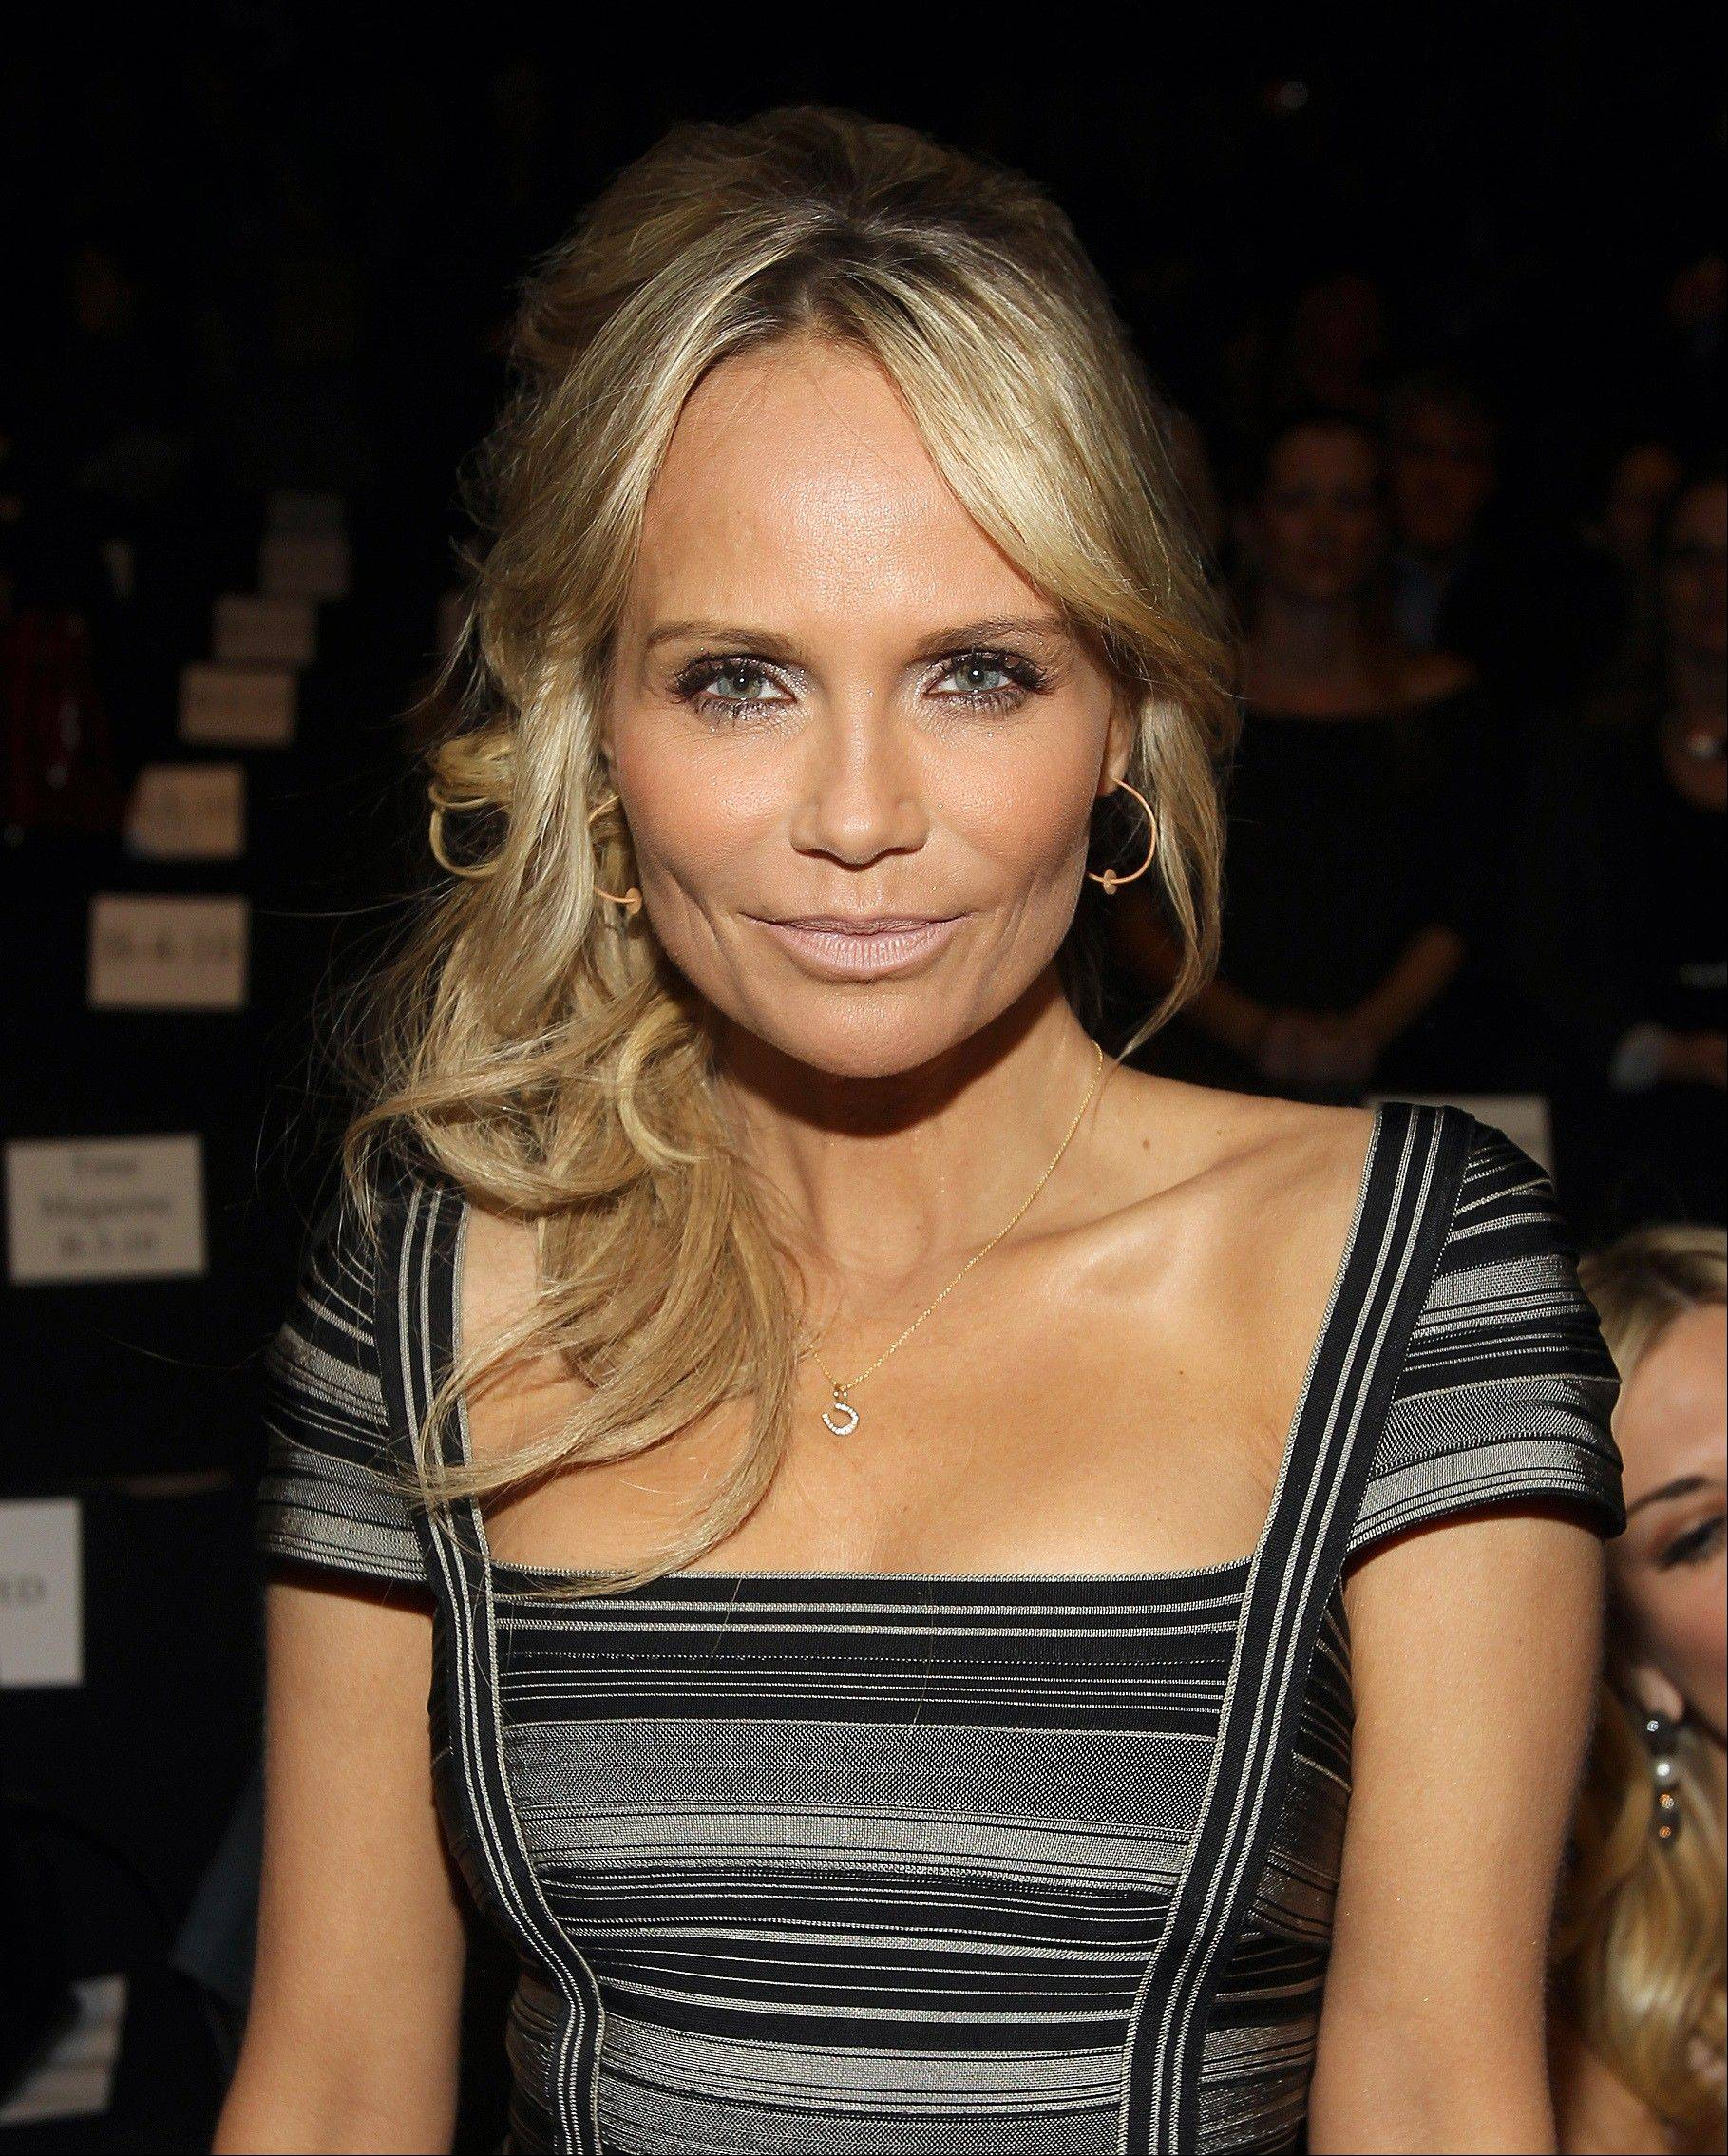 Actress Kristin Chenoweth will co-host the American Country Awards with country star Trace Adkins.